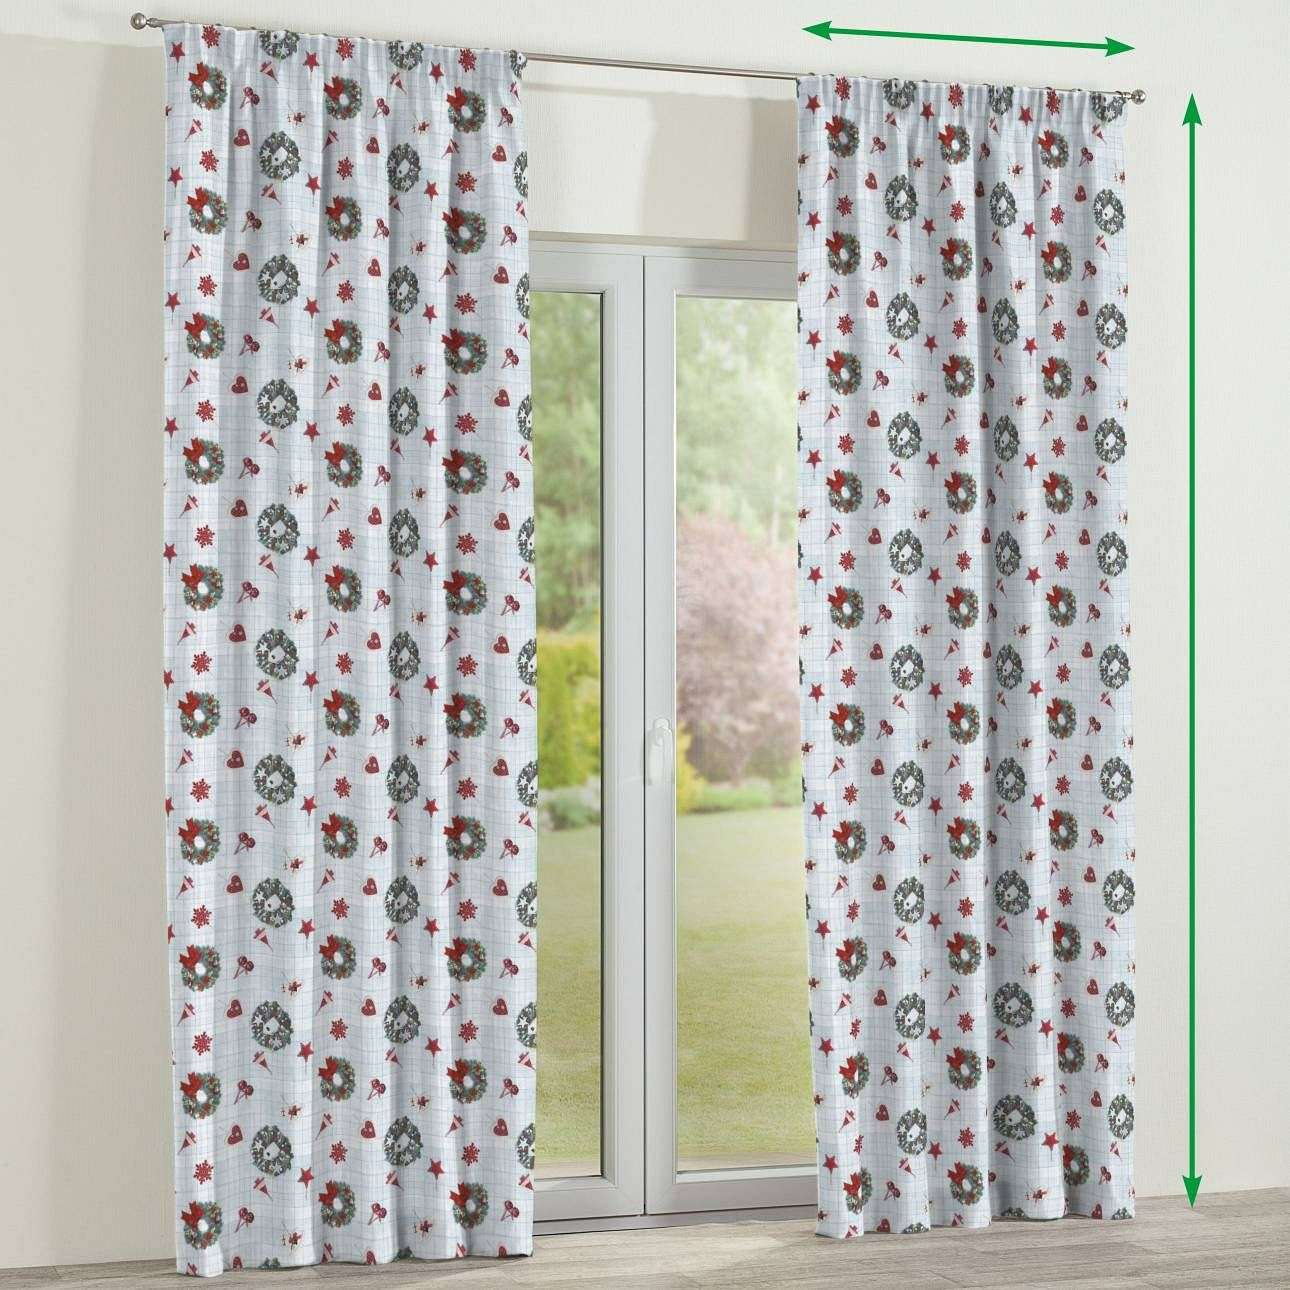 Pencil pleat curtains in collection Christmas, fabric: 629-26